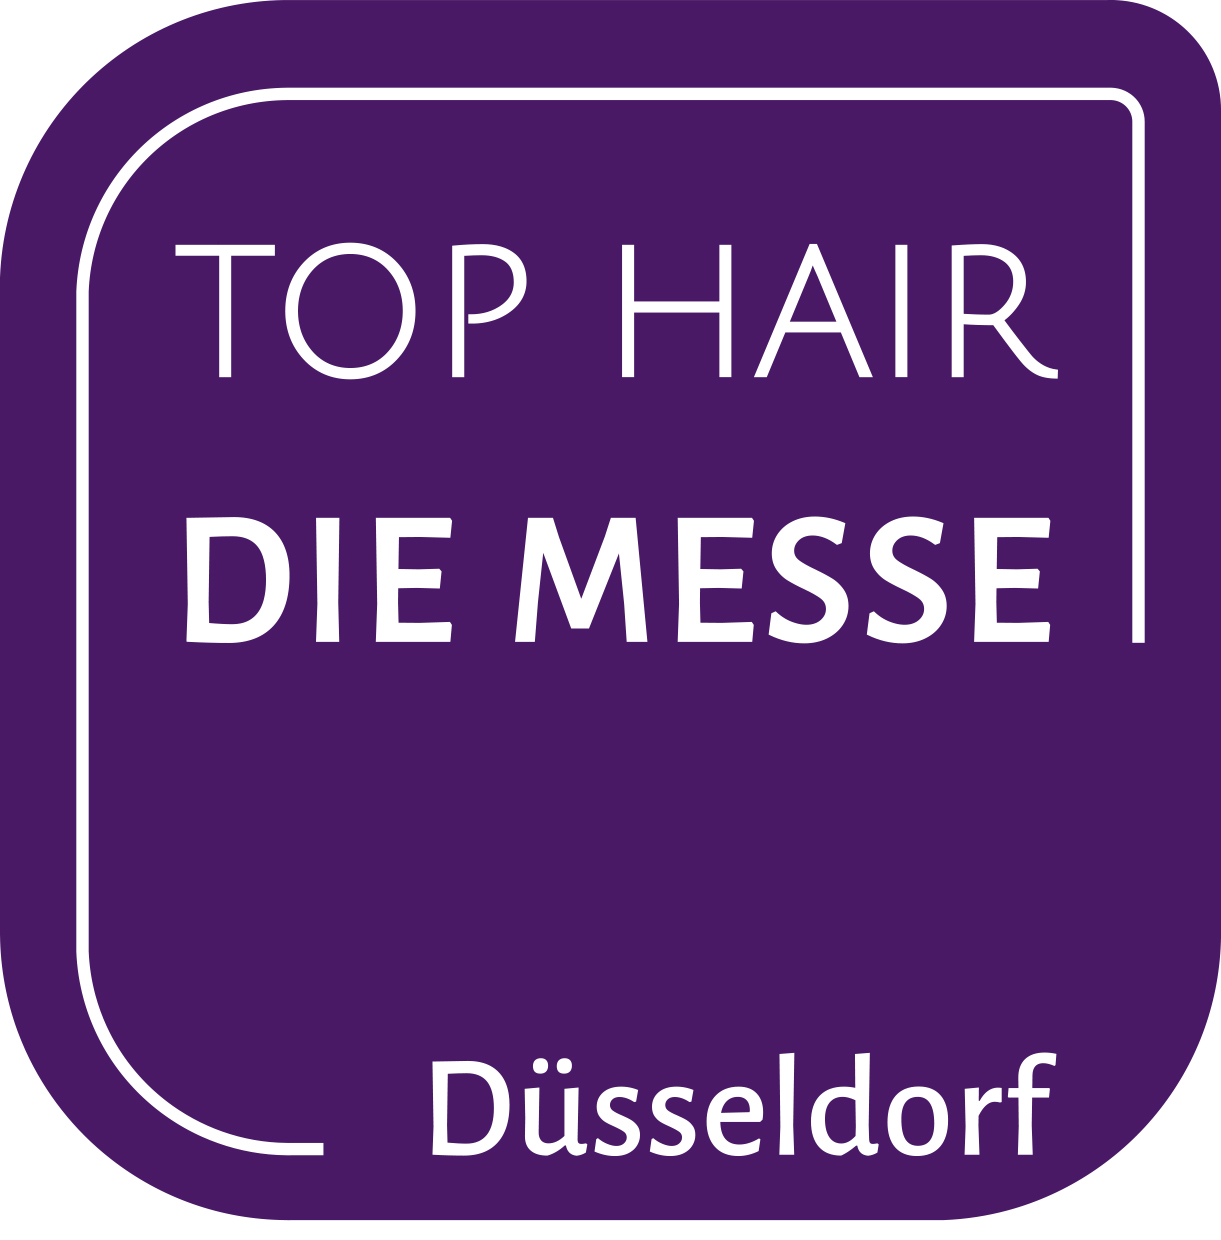 DIE MESSE. TOP HAIR. DÜSSELDORF / die messe top hair duesseldorf